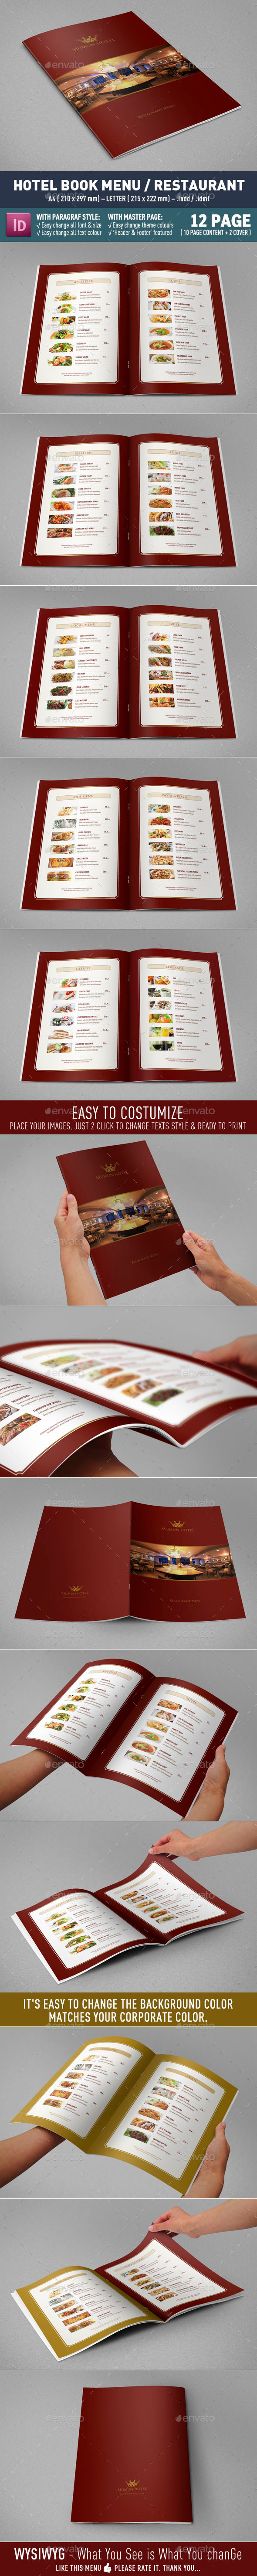 GraphicRiver Hotel Book Menu and Restaurant 8915863